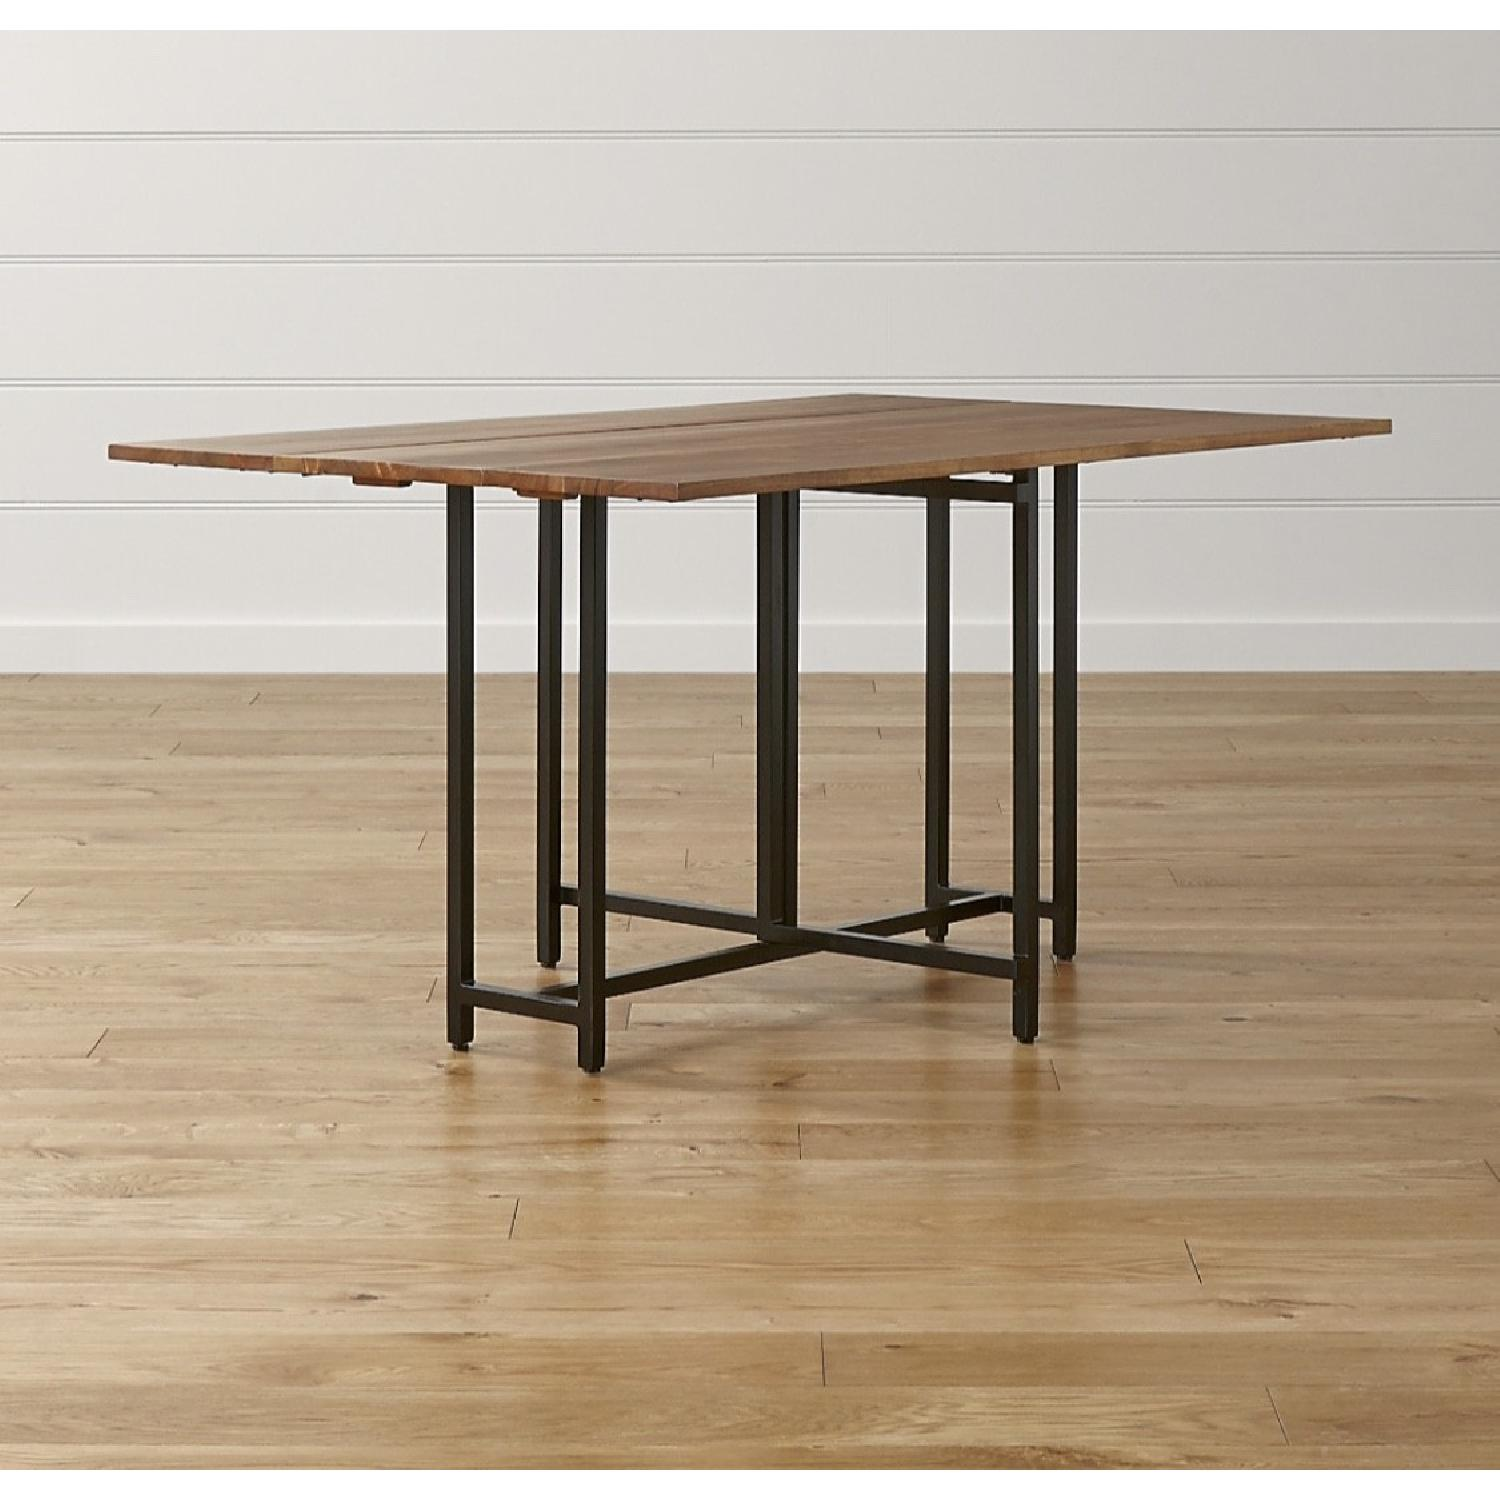 Crate & Barrel Origami Drop Leaf Rectangular Dining Table - image-4